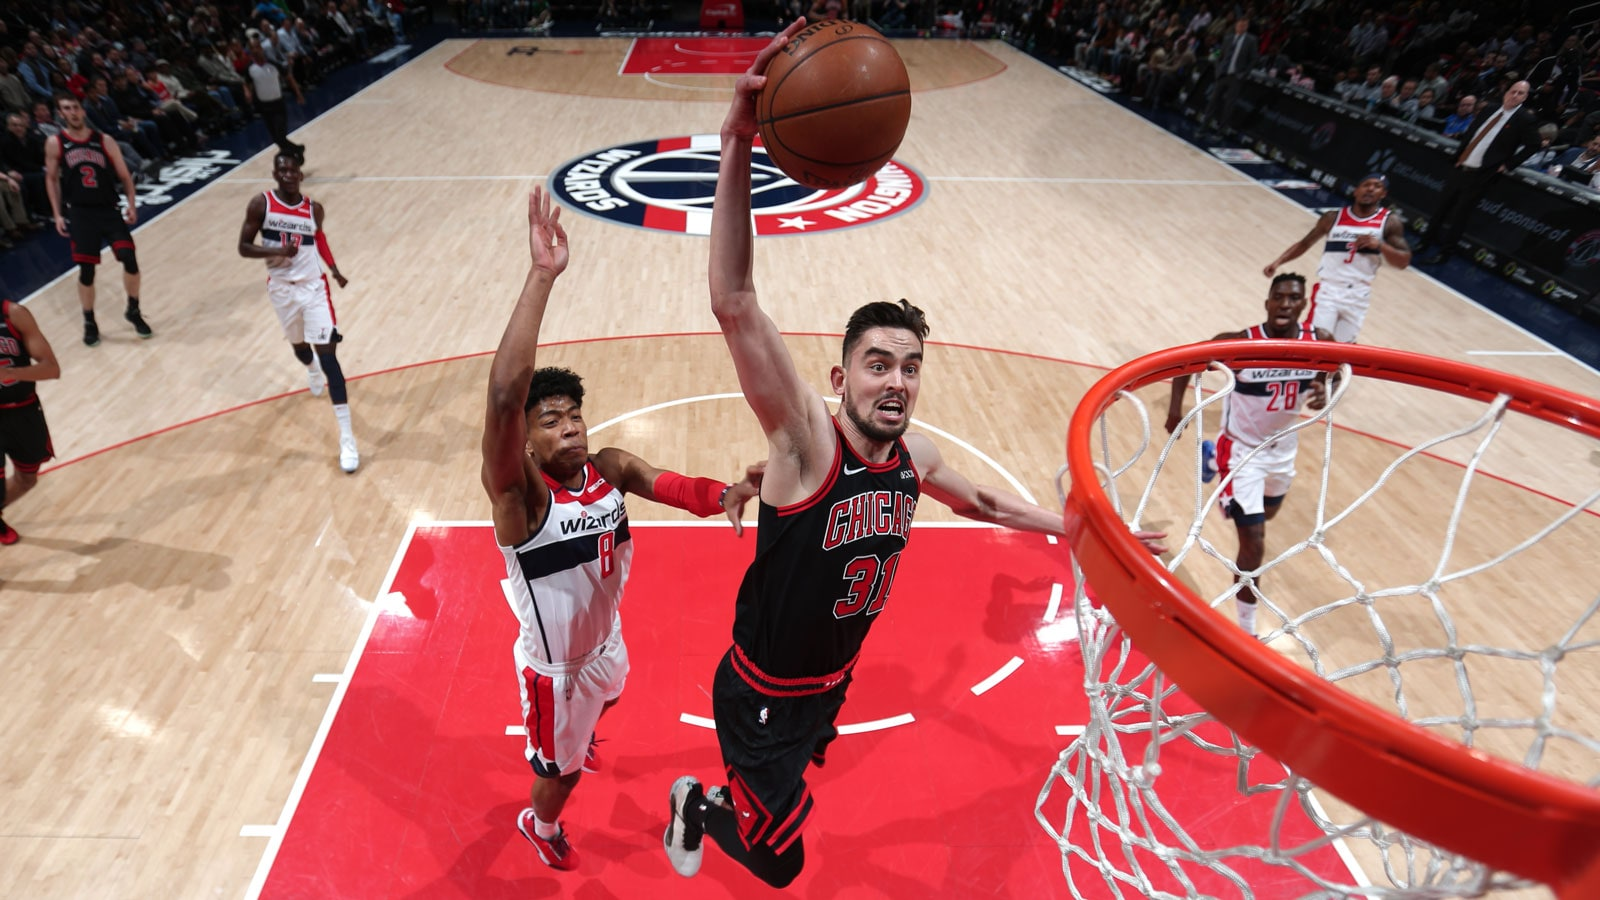 Tomas Satoransky flies in for a dunk against his former team.